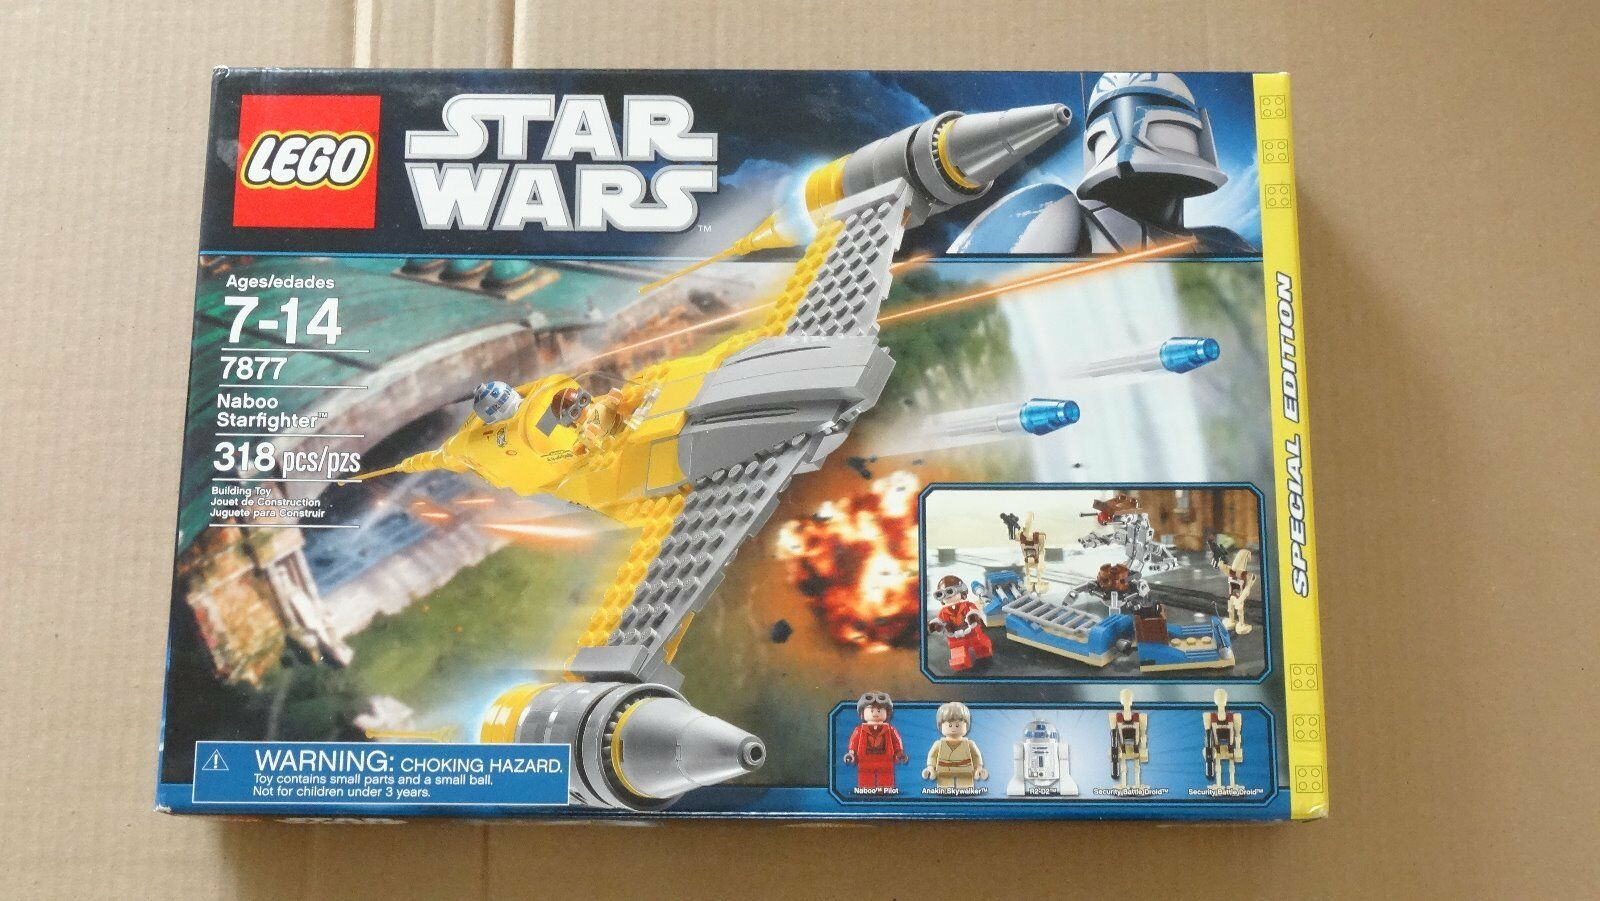 New - LEGO Star Wars 7877 Naboo Starfighter (Special Edition) - 318 pcs - NISB